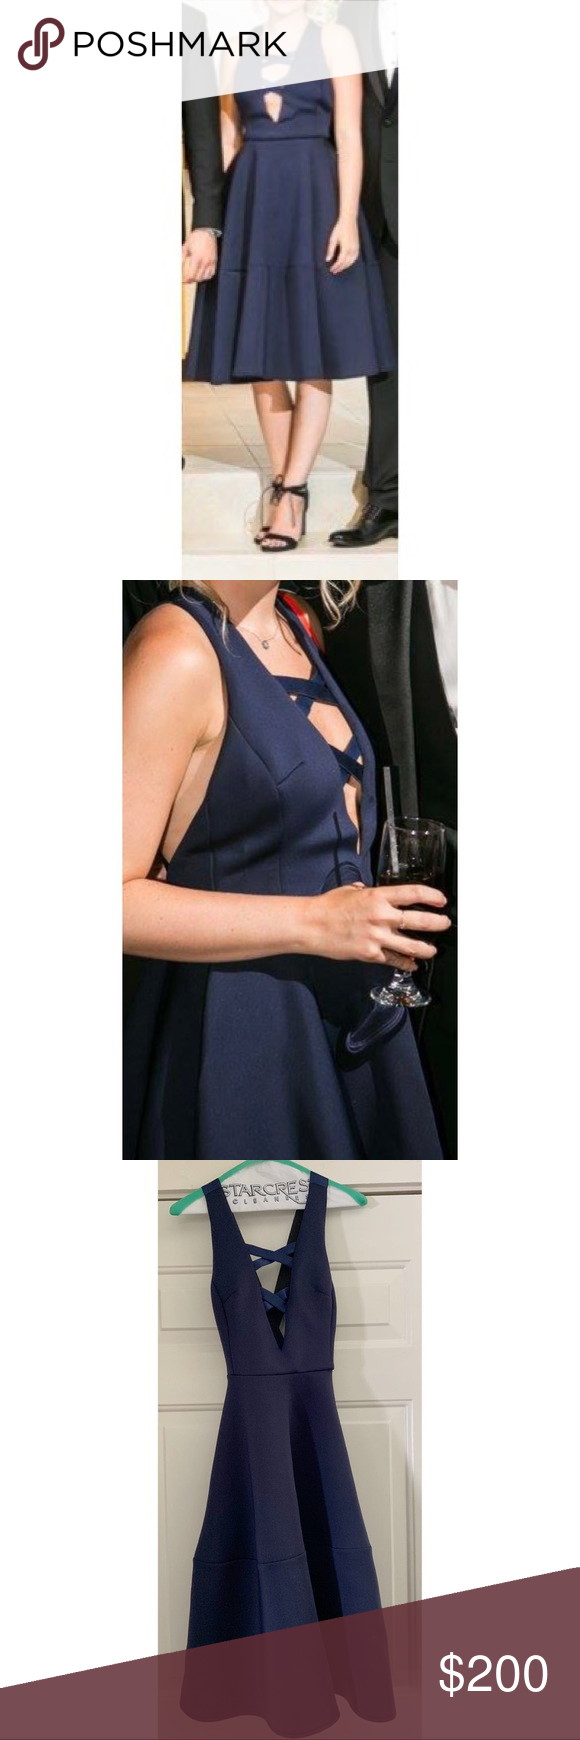 Bronx and Banco navy cocktail dress This dress is amazing! Cross detailing in both front and back. Dress is very flattering and holds shape. Worn once and has been professionally dry cleaned. Bronx and Banco Dresses Backless #backlesscocktaildress